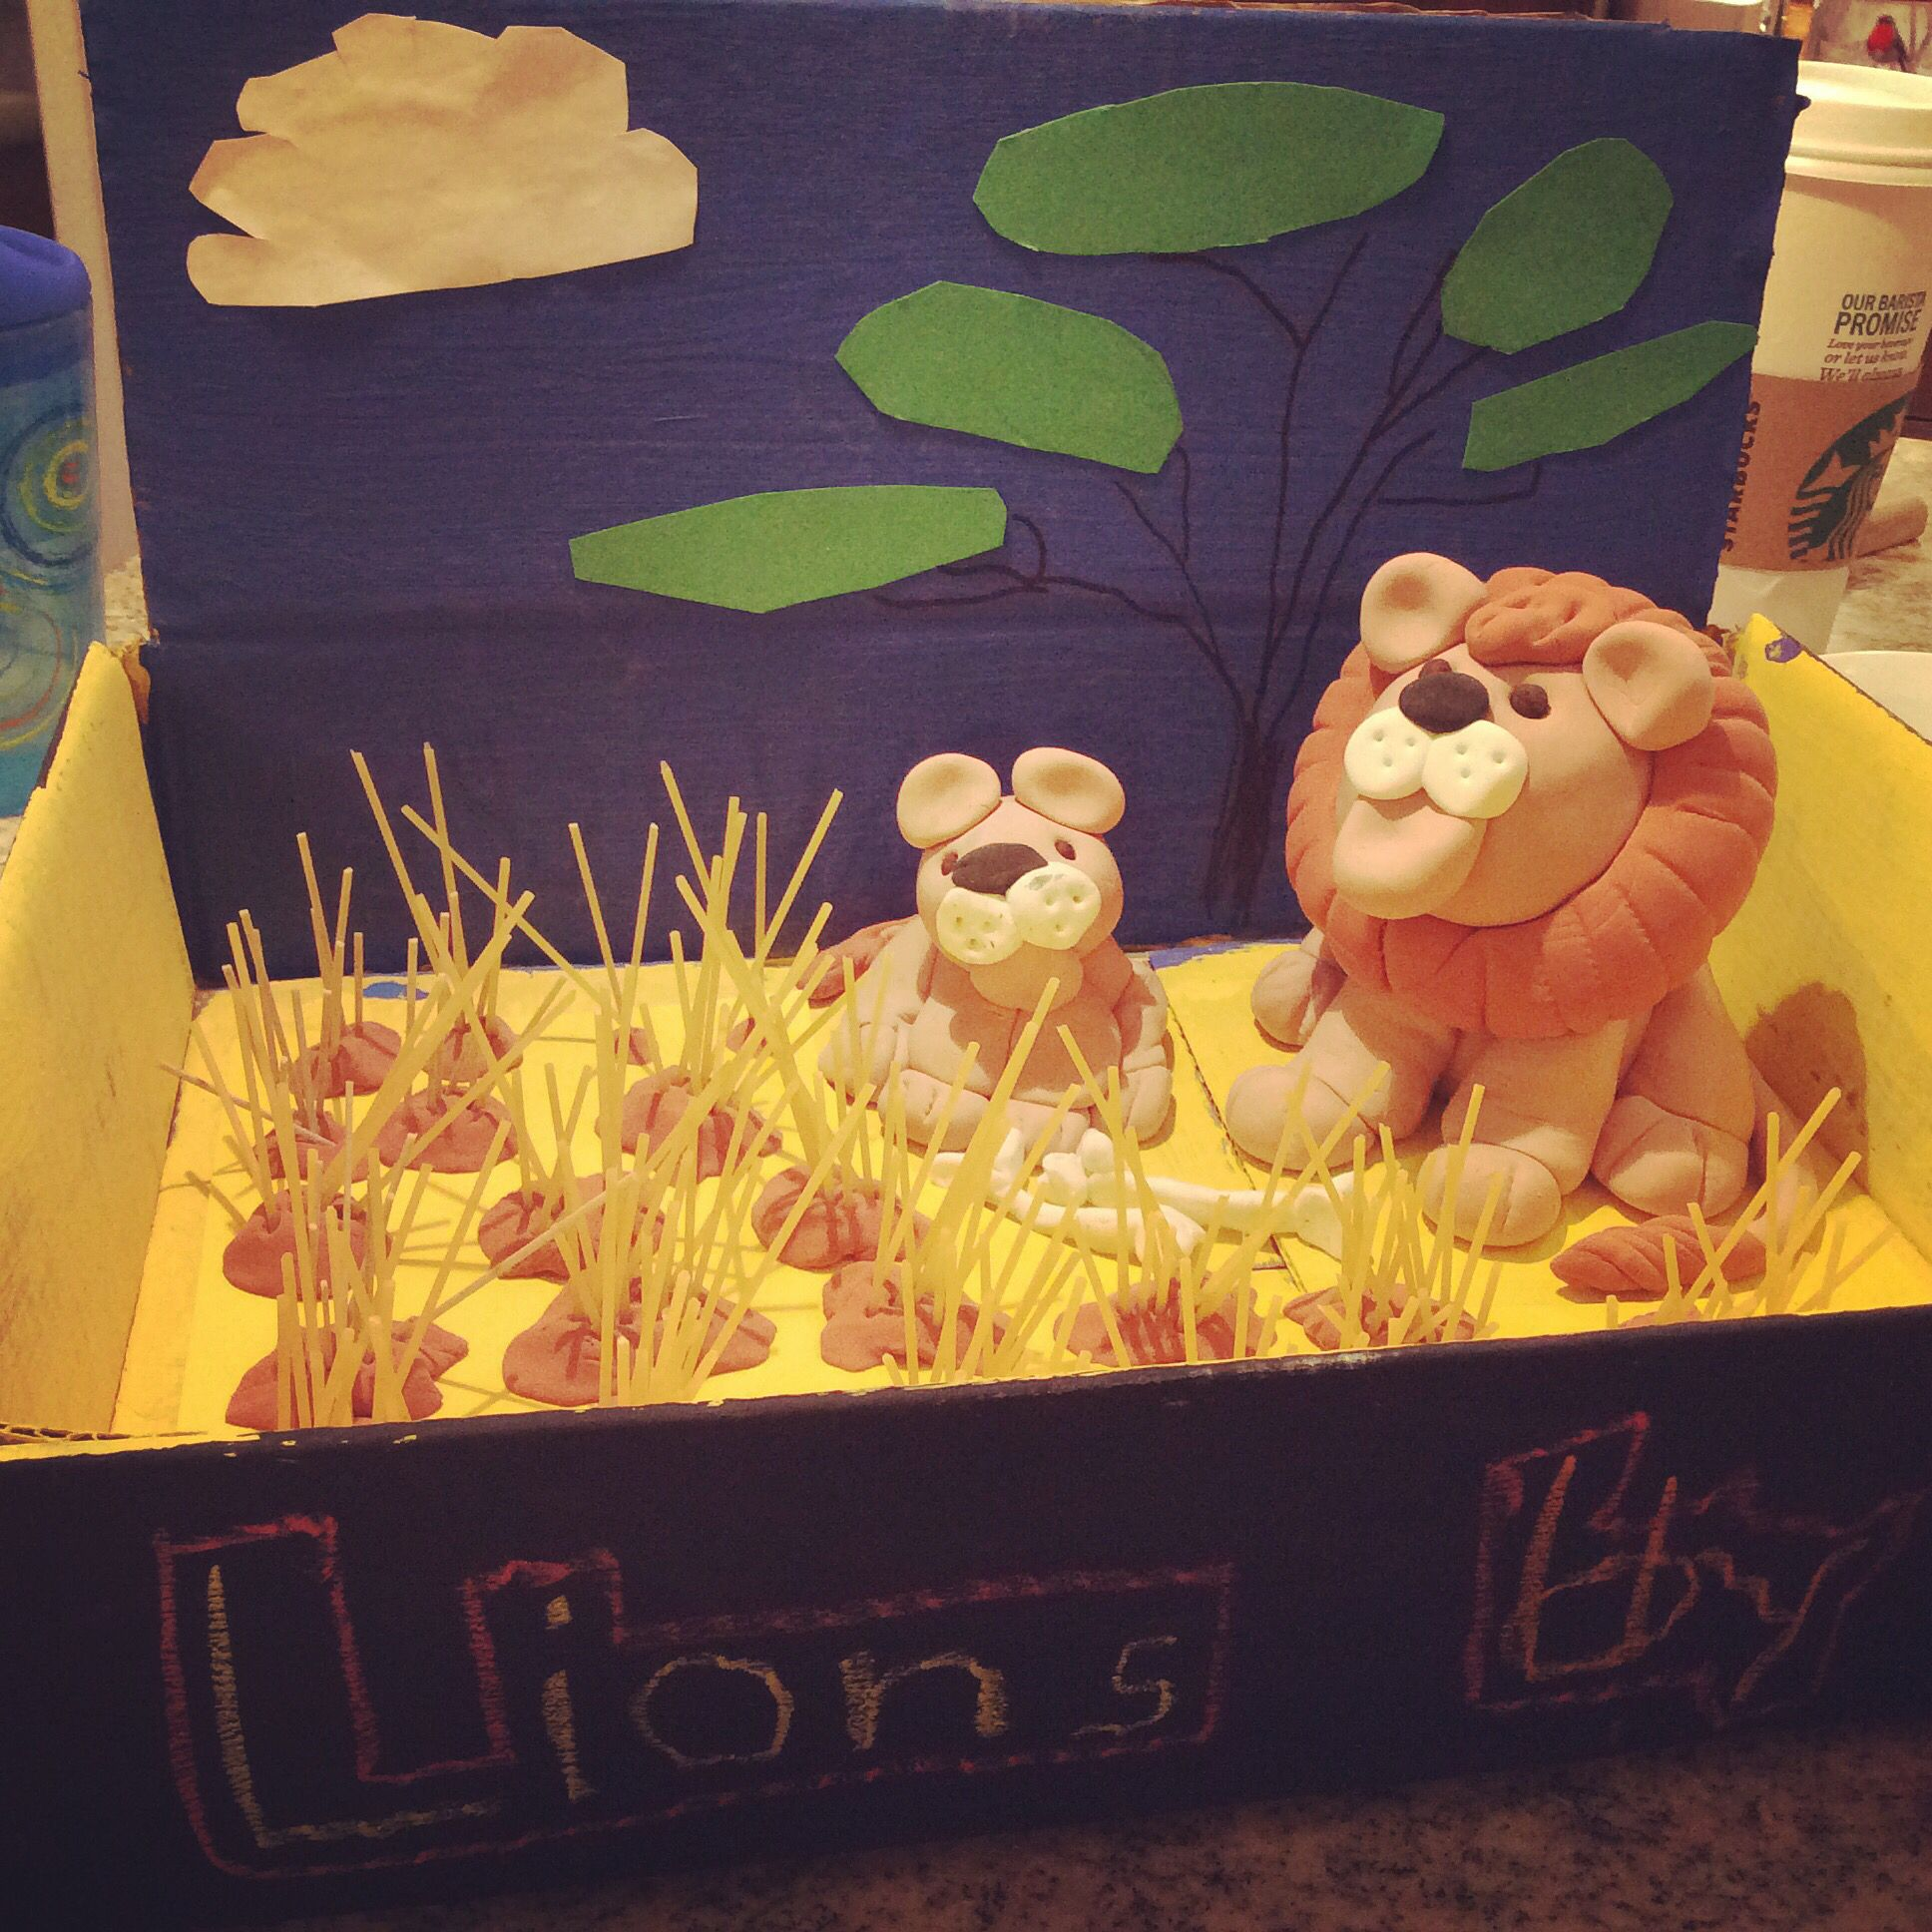 Lions shoebox diorama school project model magic spaghetti lions shoebox diorama school project model magic spaghetti acrylic paint play sciox Image collections